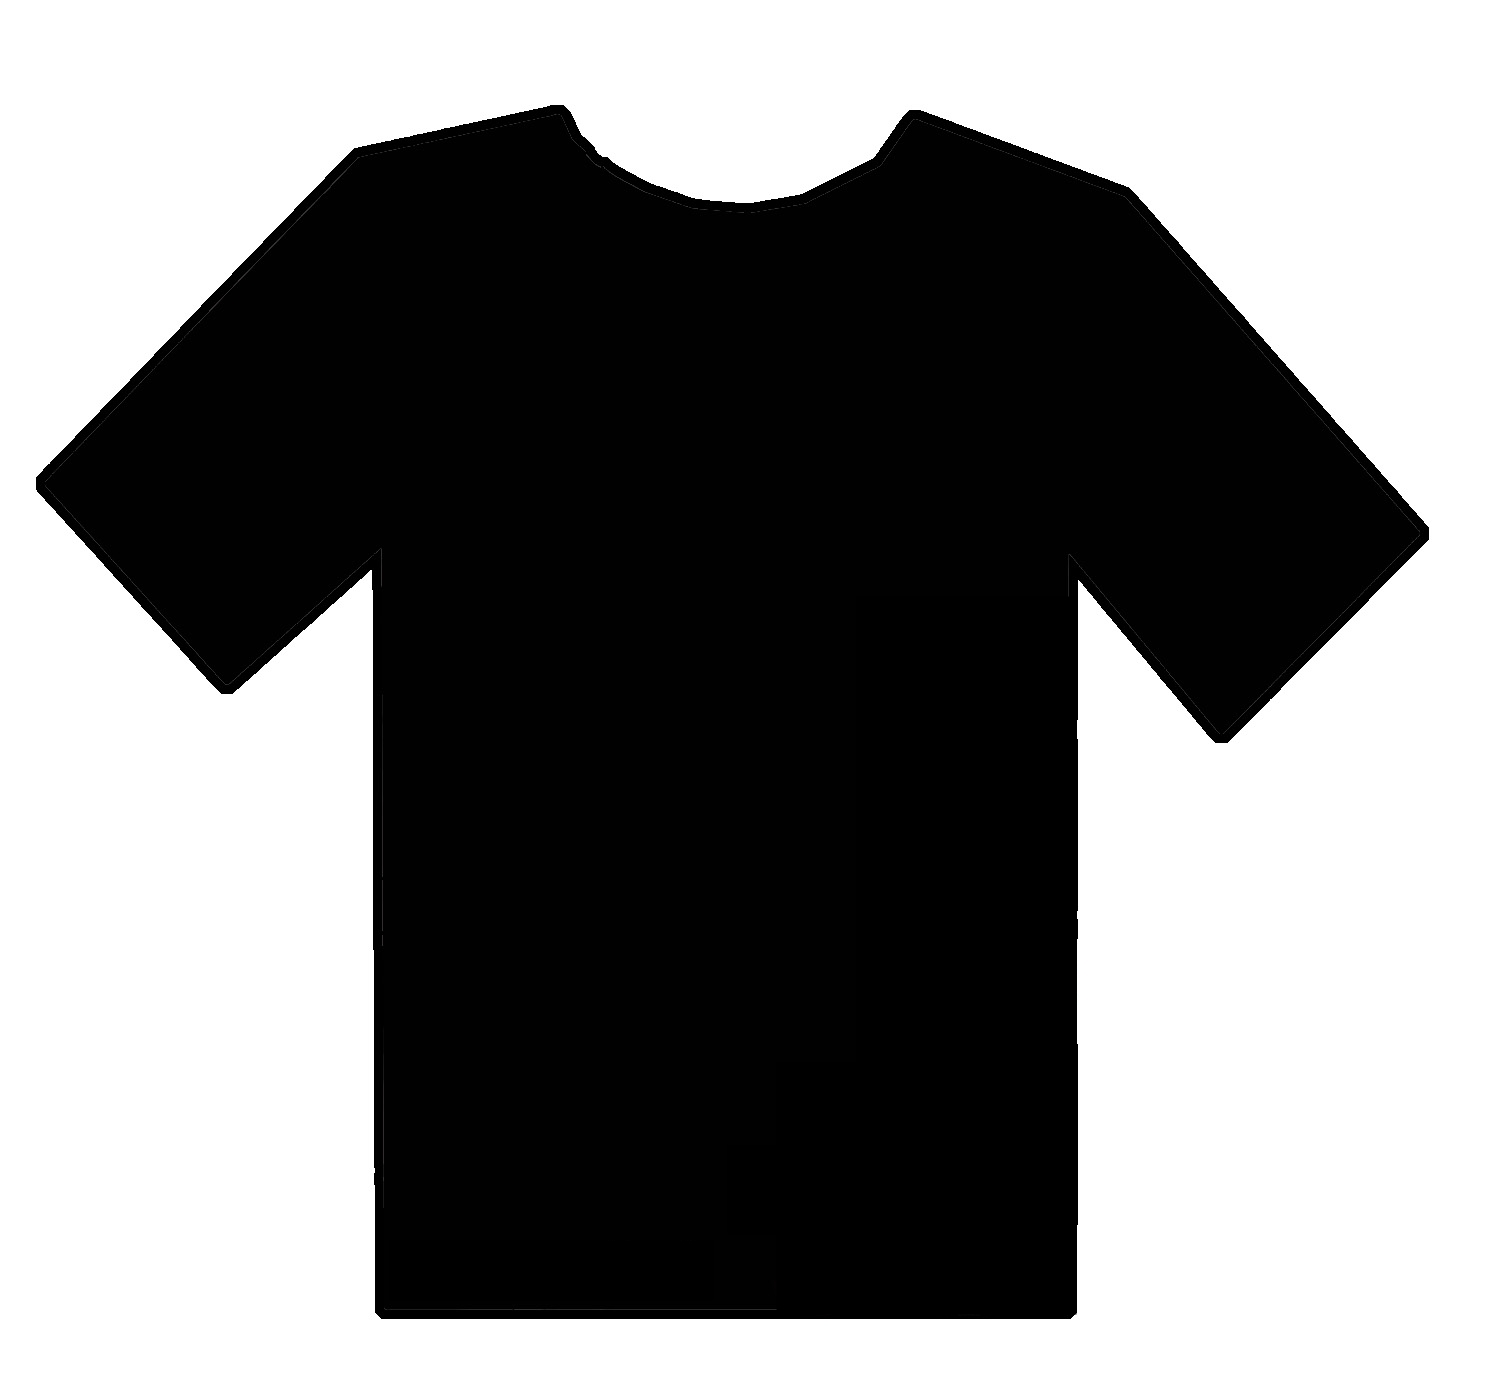 Blank t shirt back clipart best for Vector art for t shirts